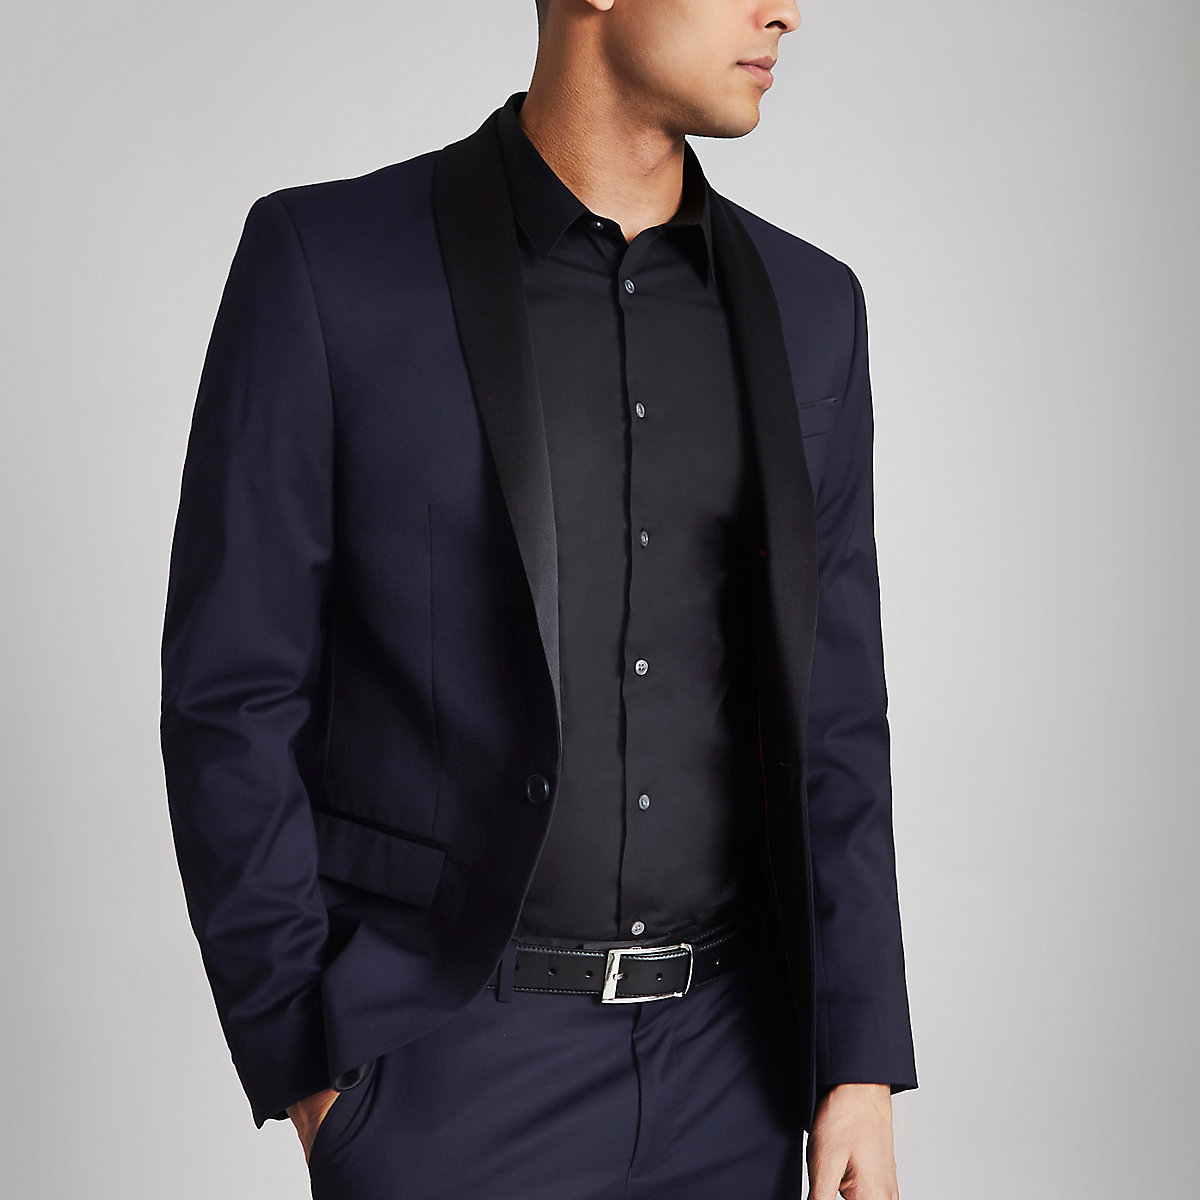 Navy and black stretch skinny tuxedo jacket